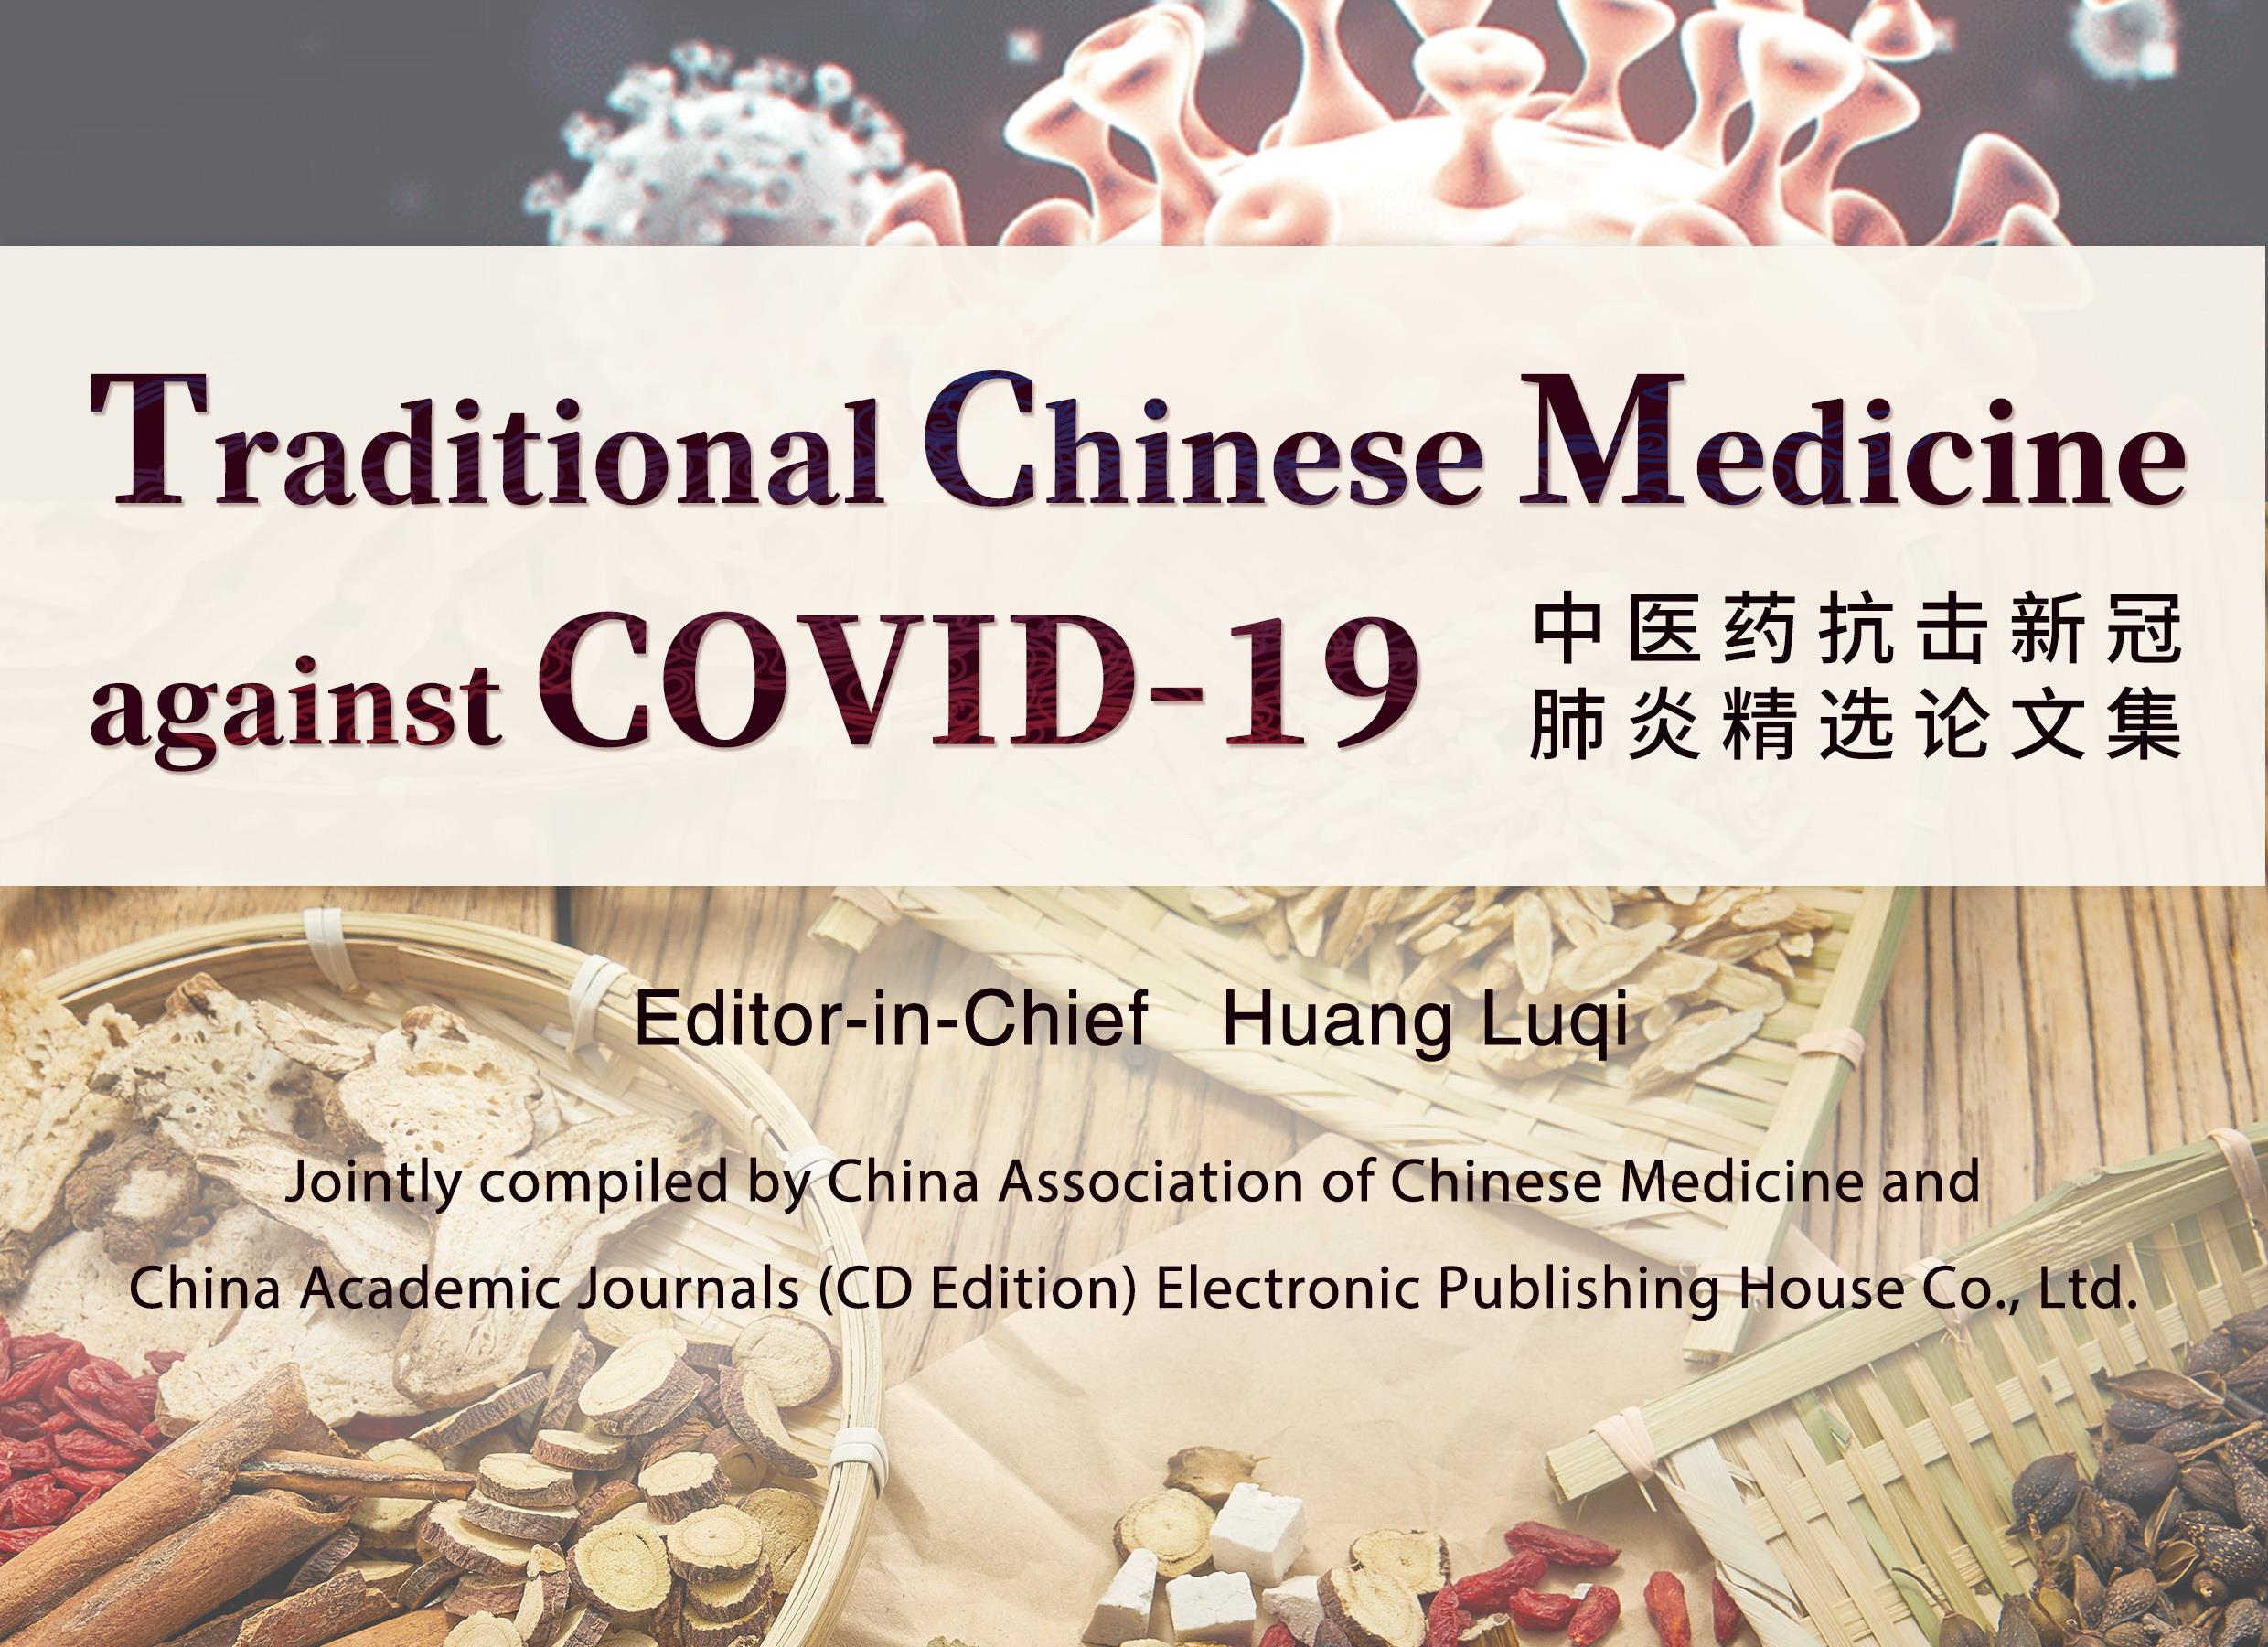 Traditional Chinese Medicine against COVID-19